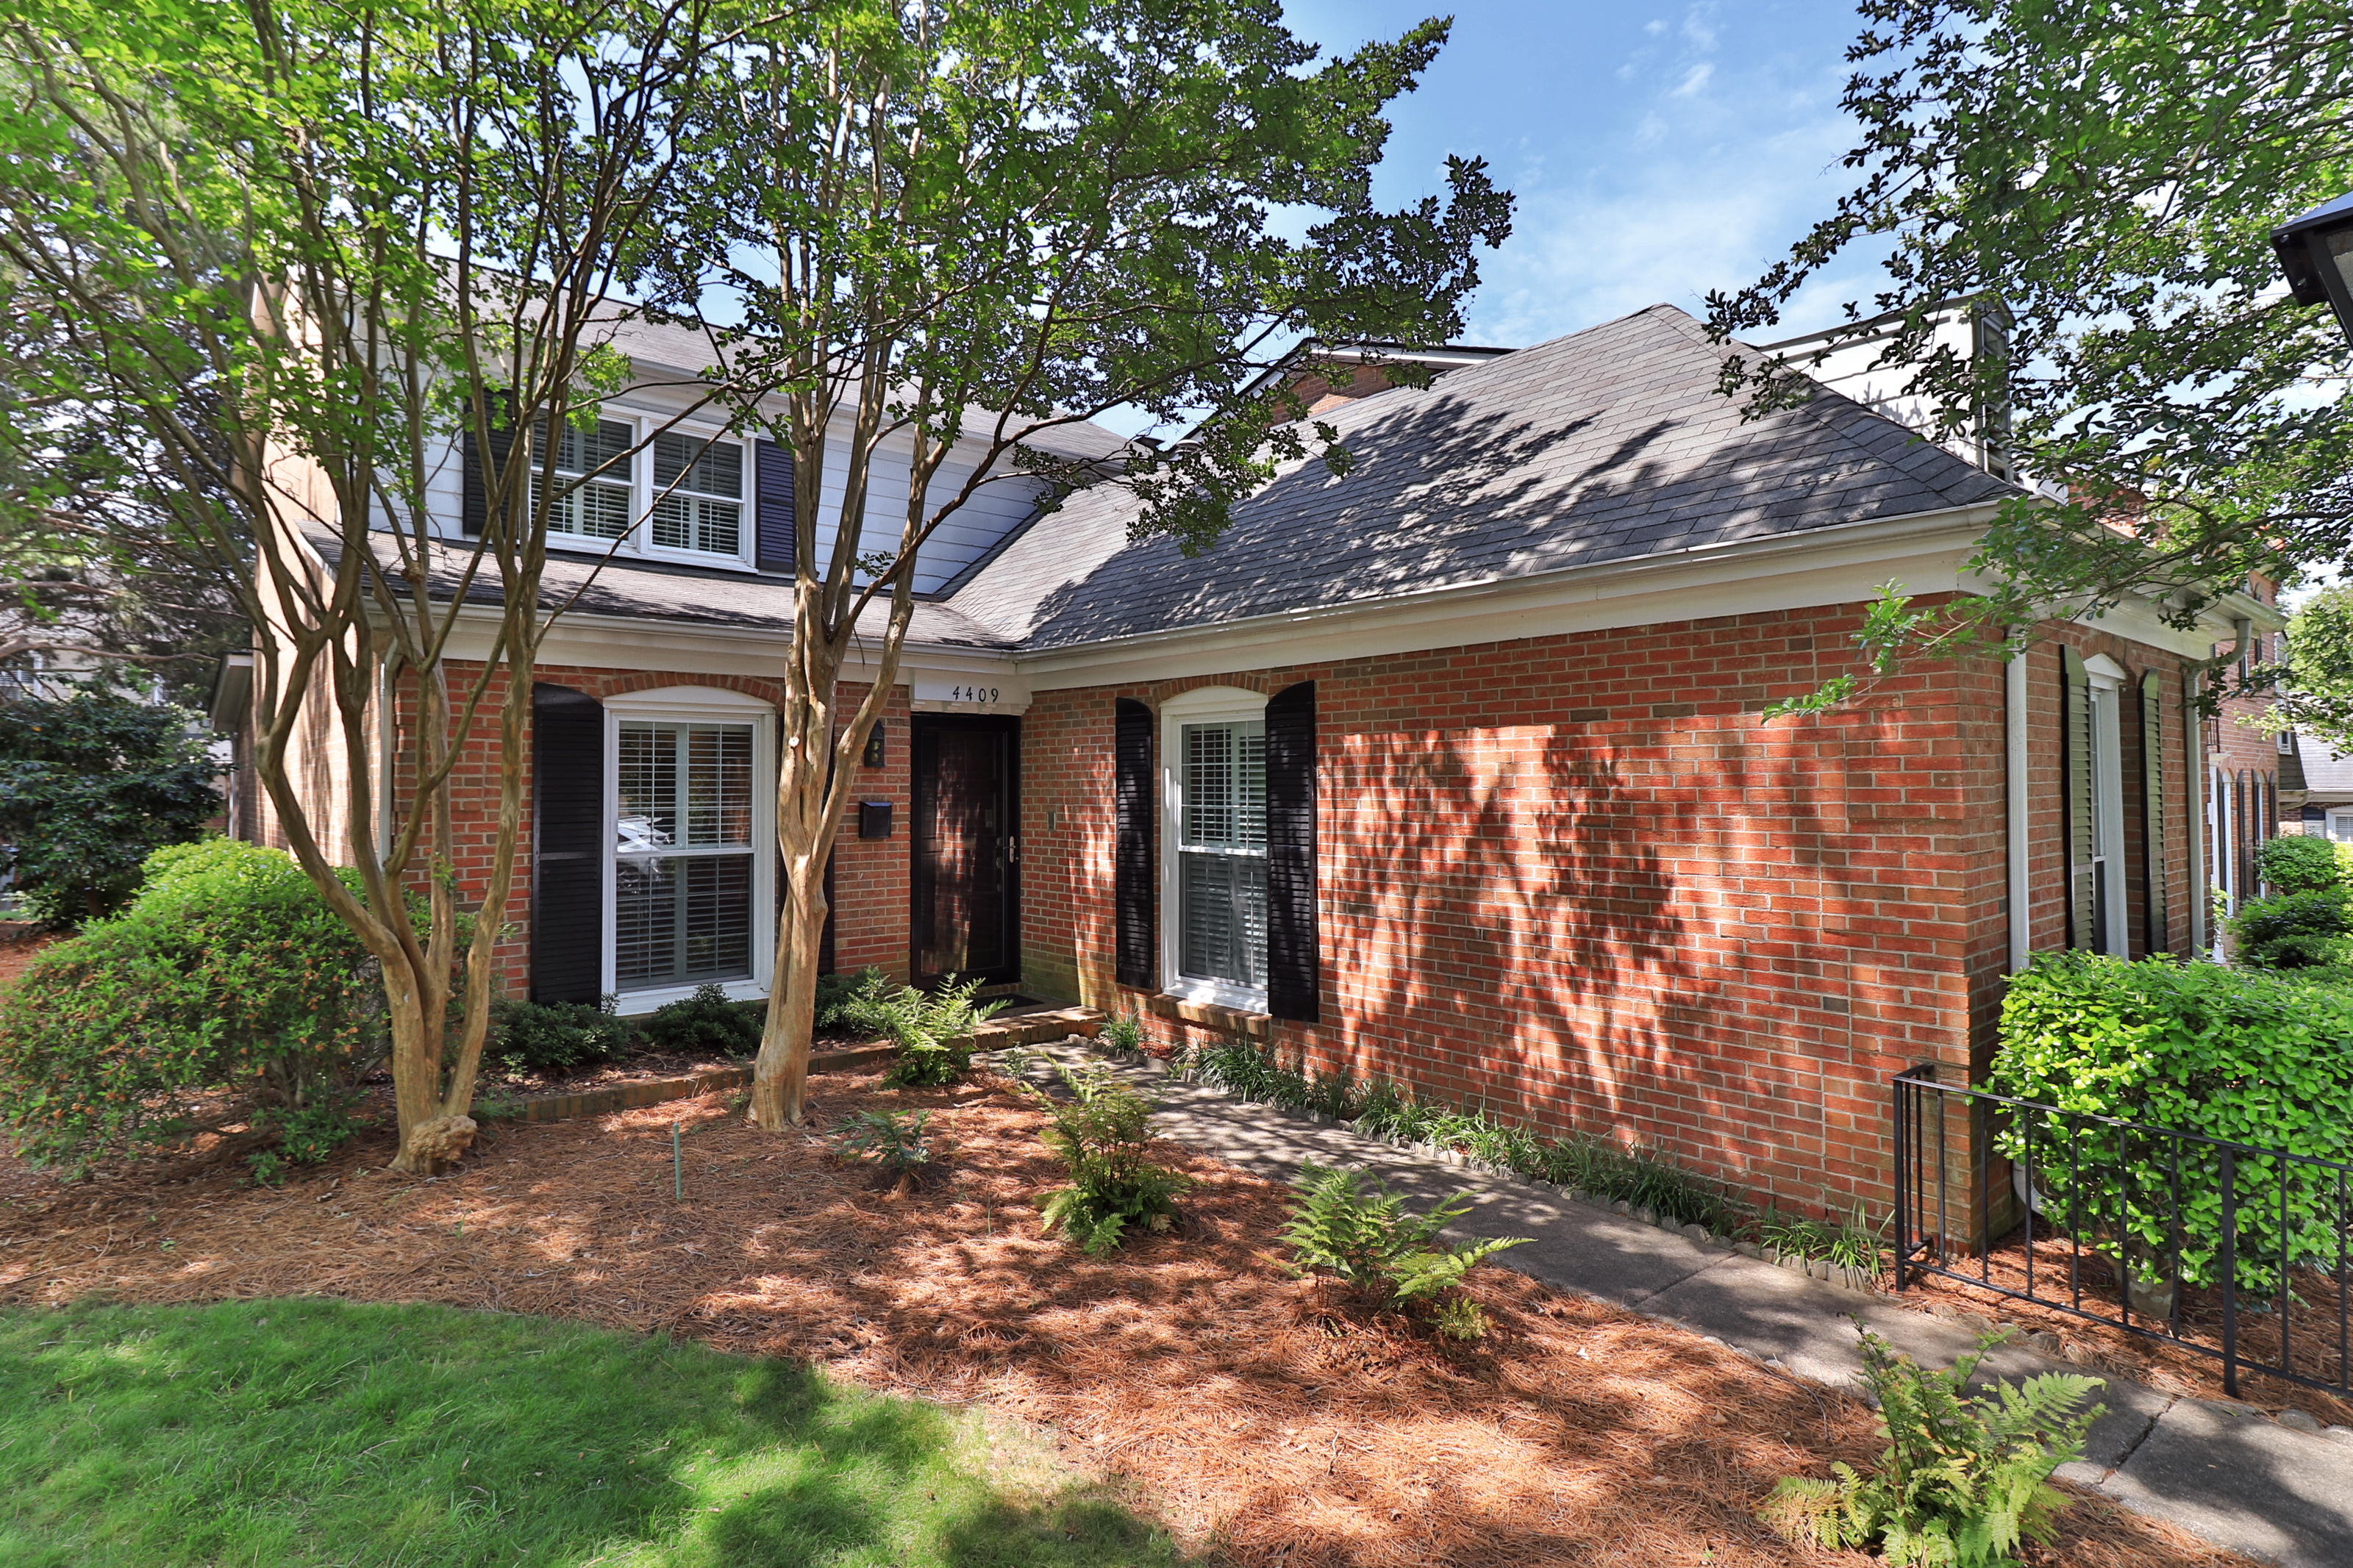 South Park Townhomes for sale